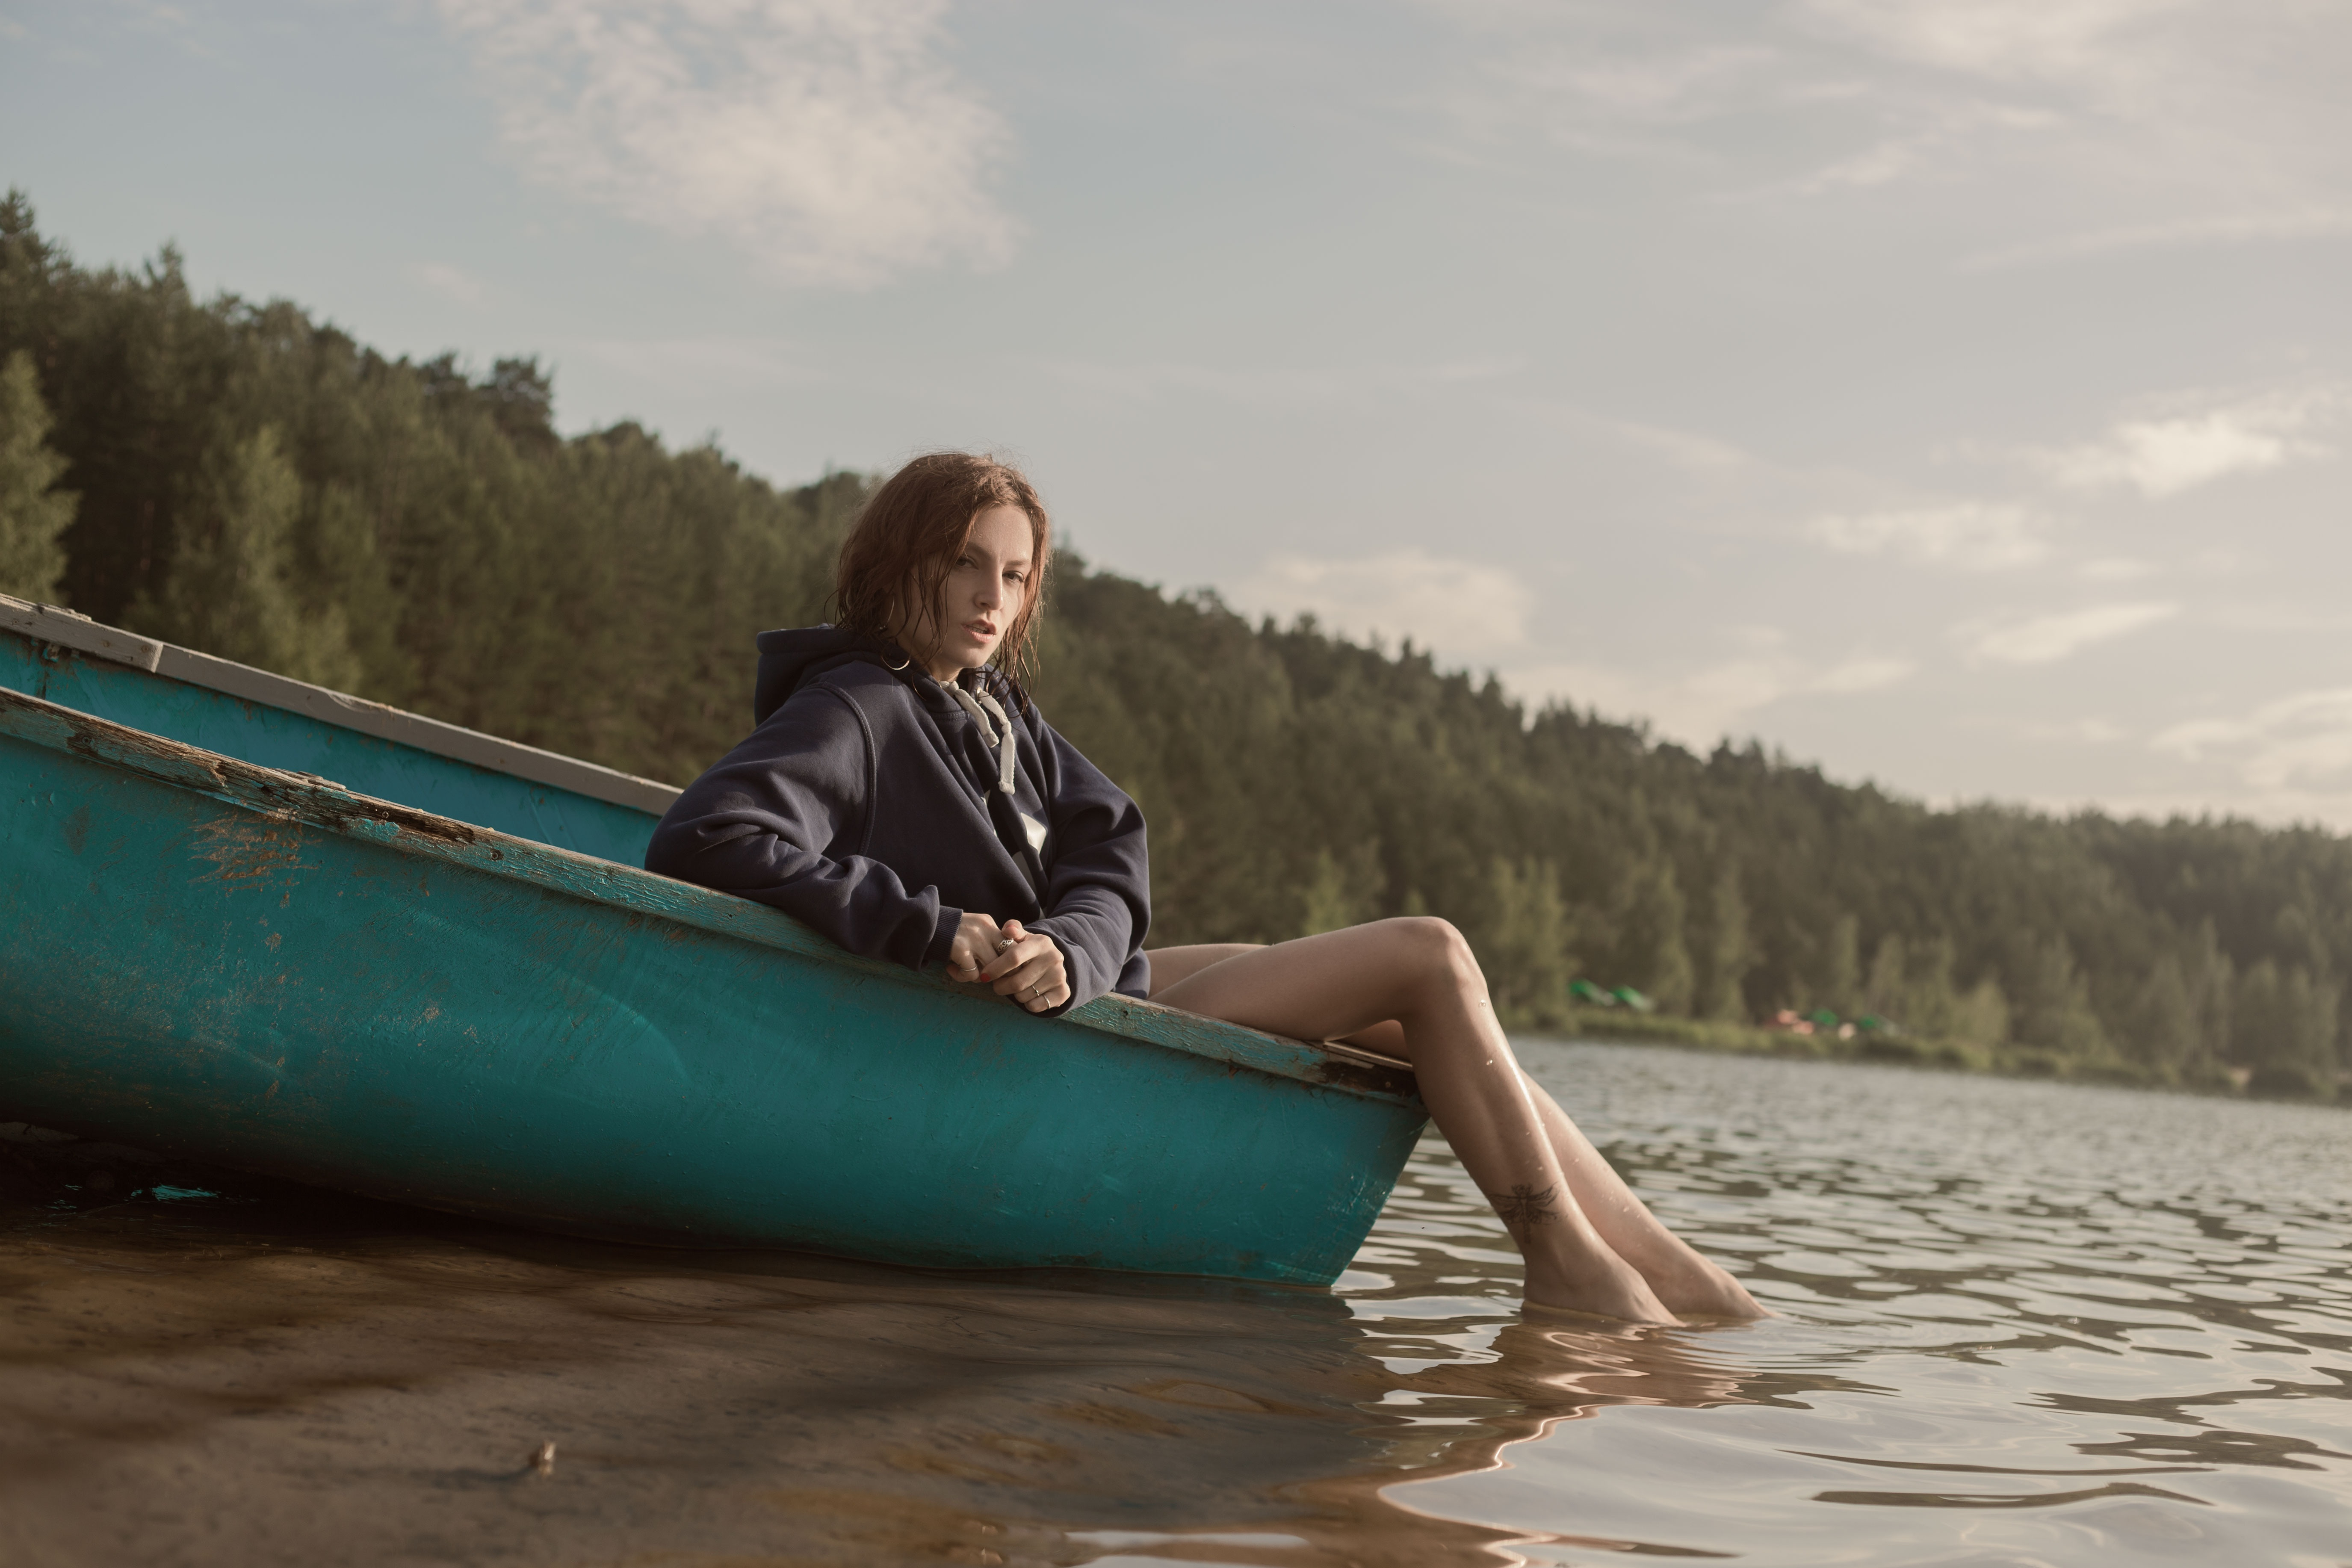 Woman In Black Hoodie Sitting On Blue Kayak 183 Free Stock Photo